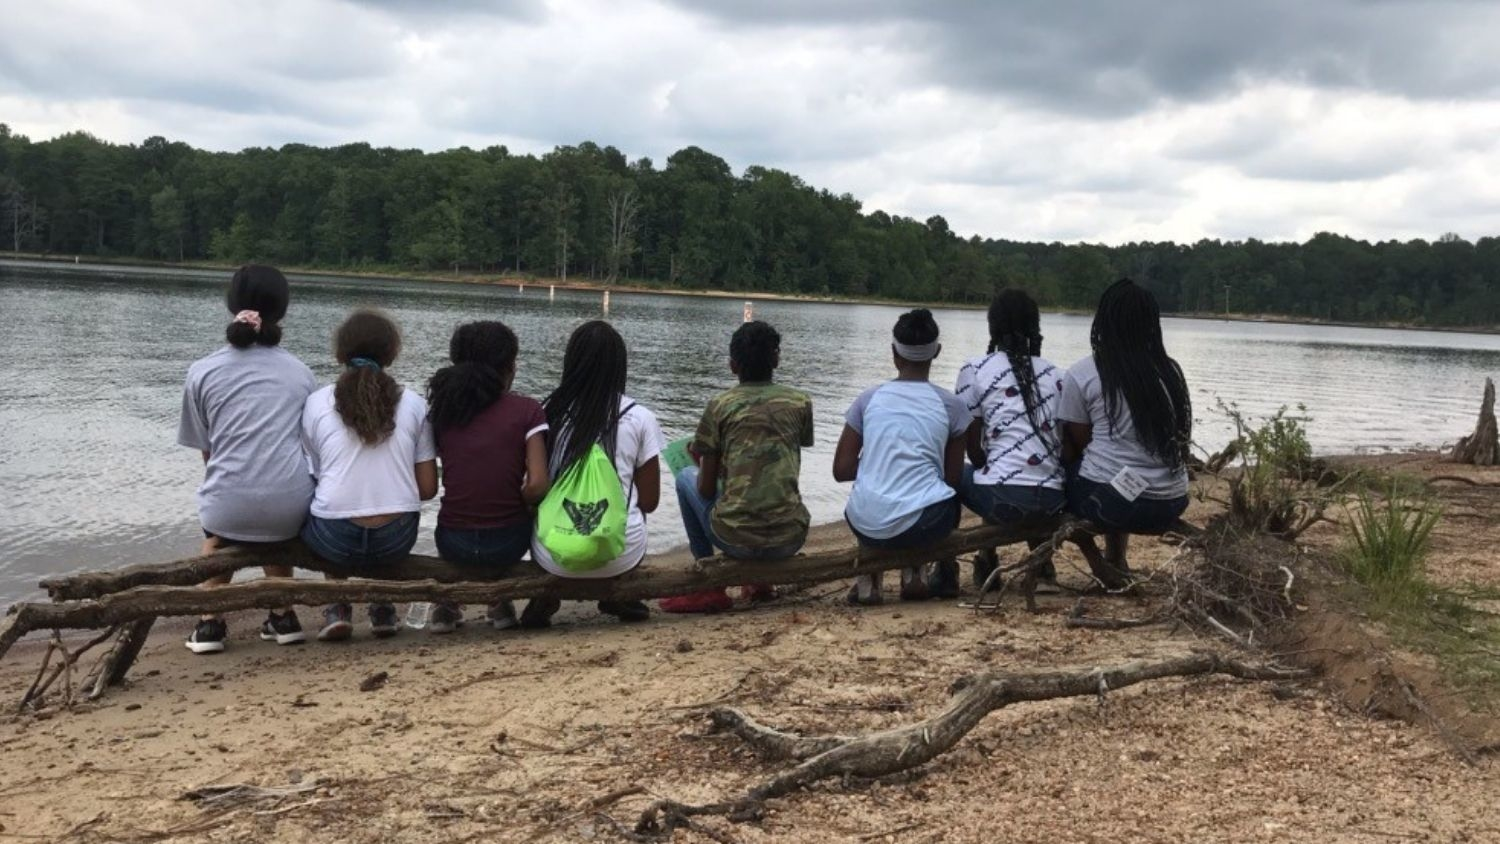 A girls' overnight camp focused on environmental science and ecology.